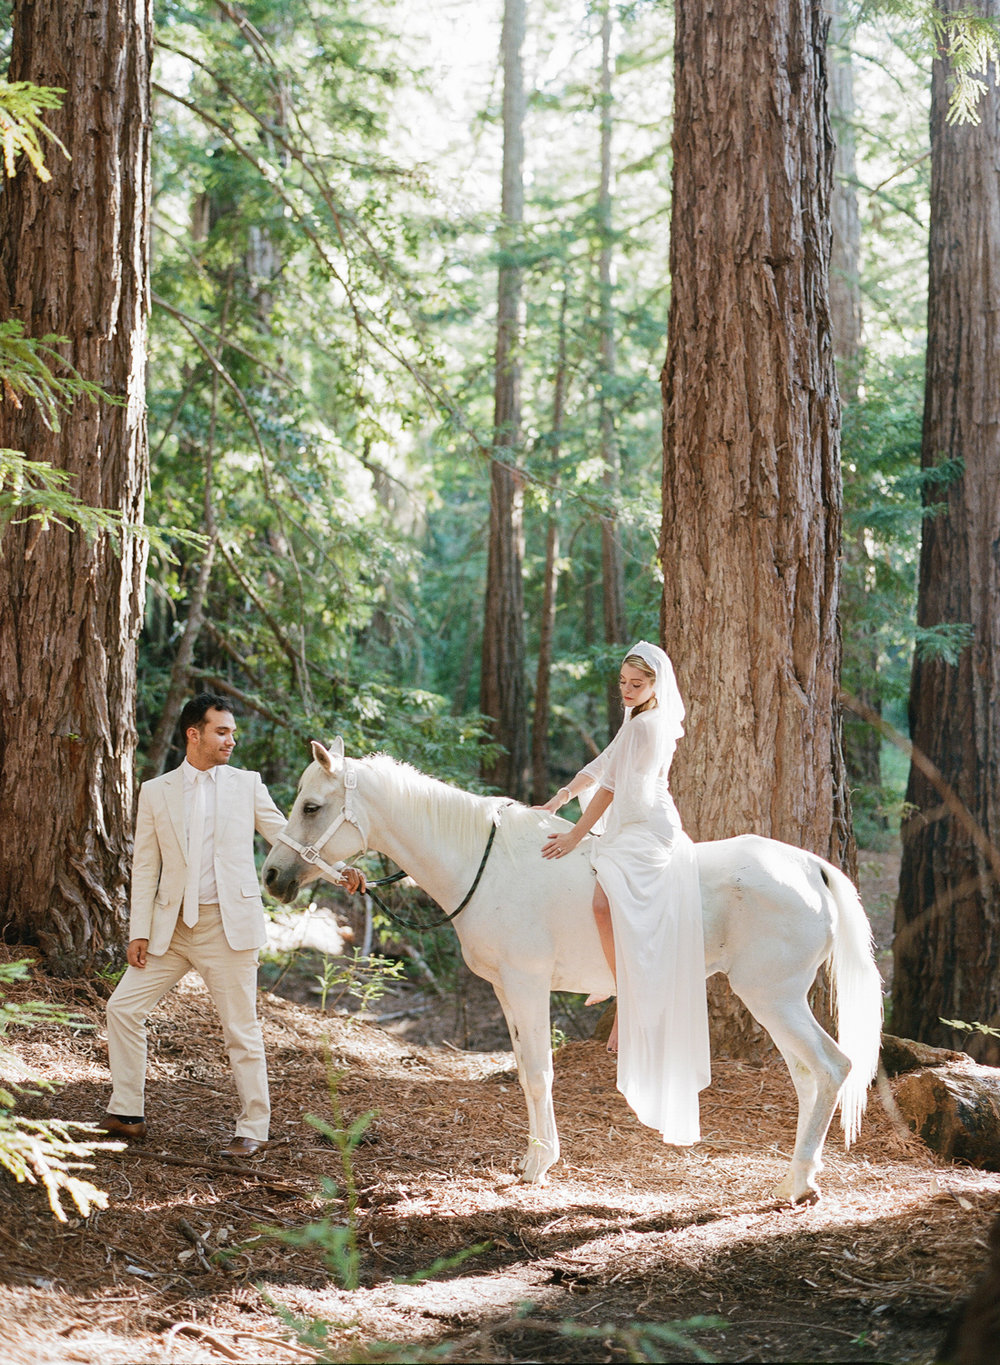 The bride sits on a white horse with the groom after the ceremony; Sylvie Gil Photography